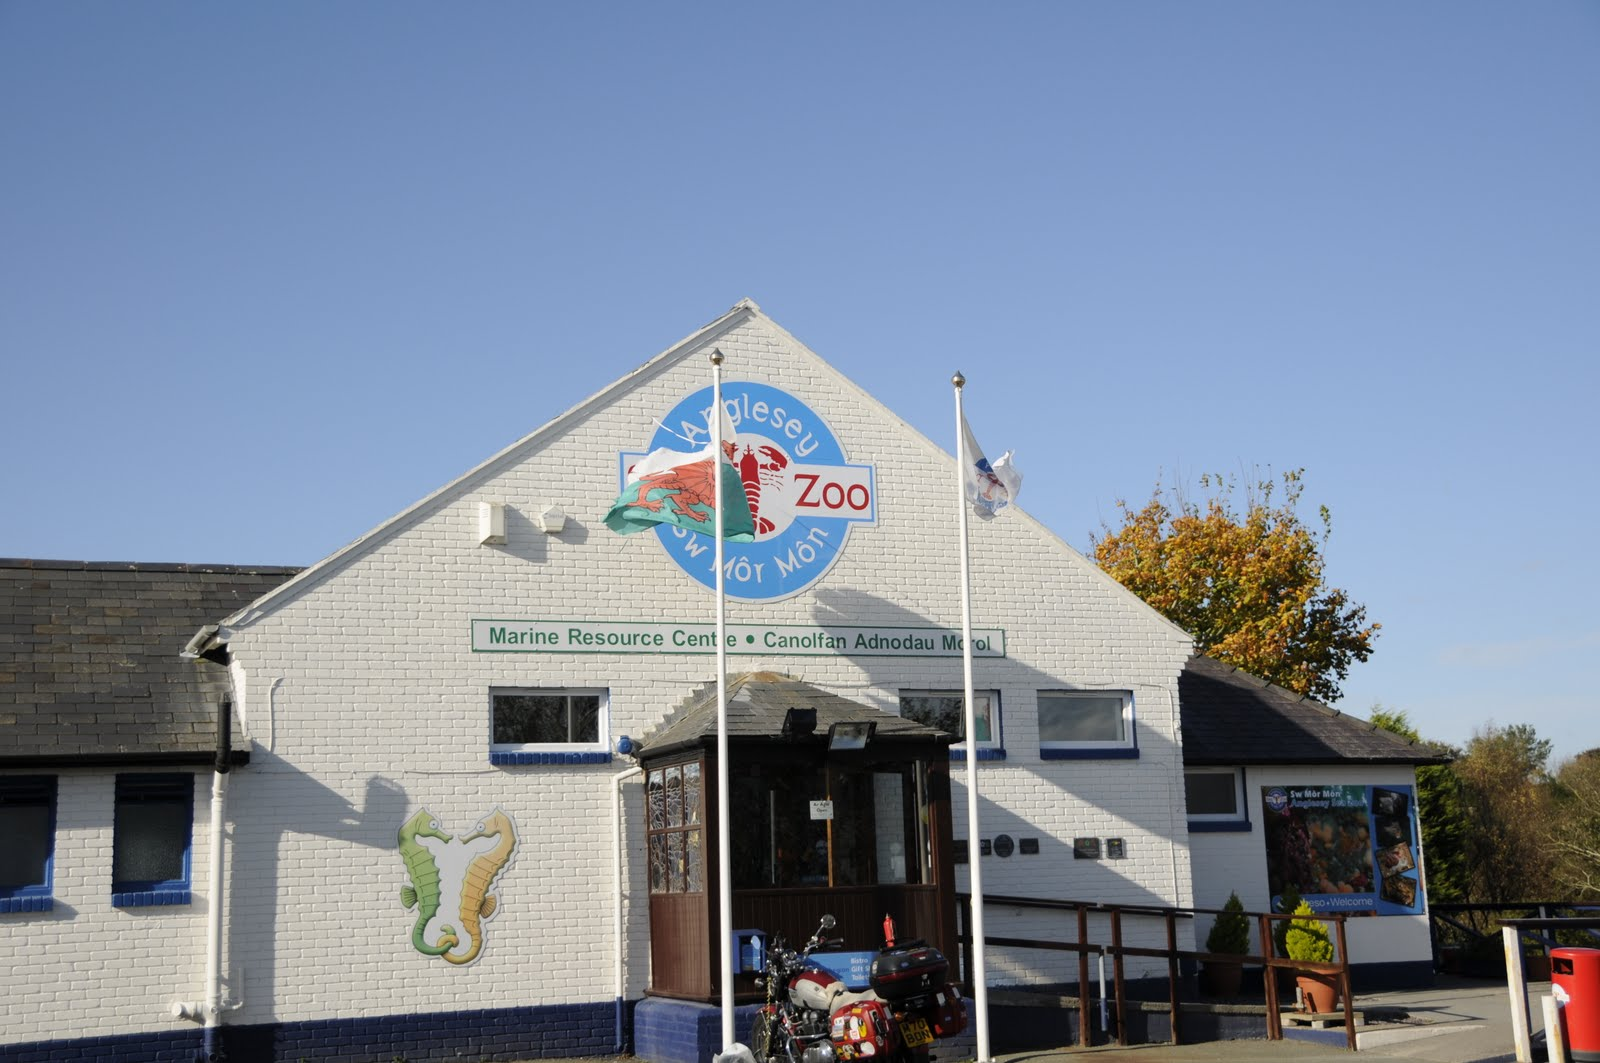 Holidays In Wales: Anglesey Sea Zoo